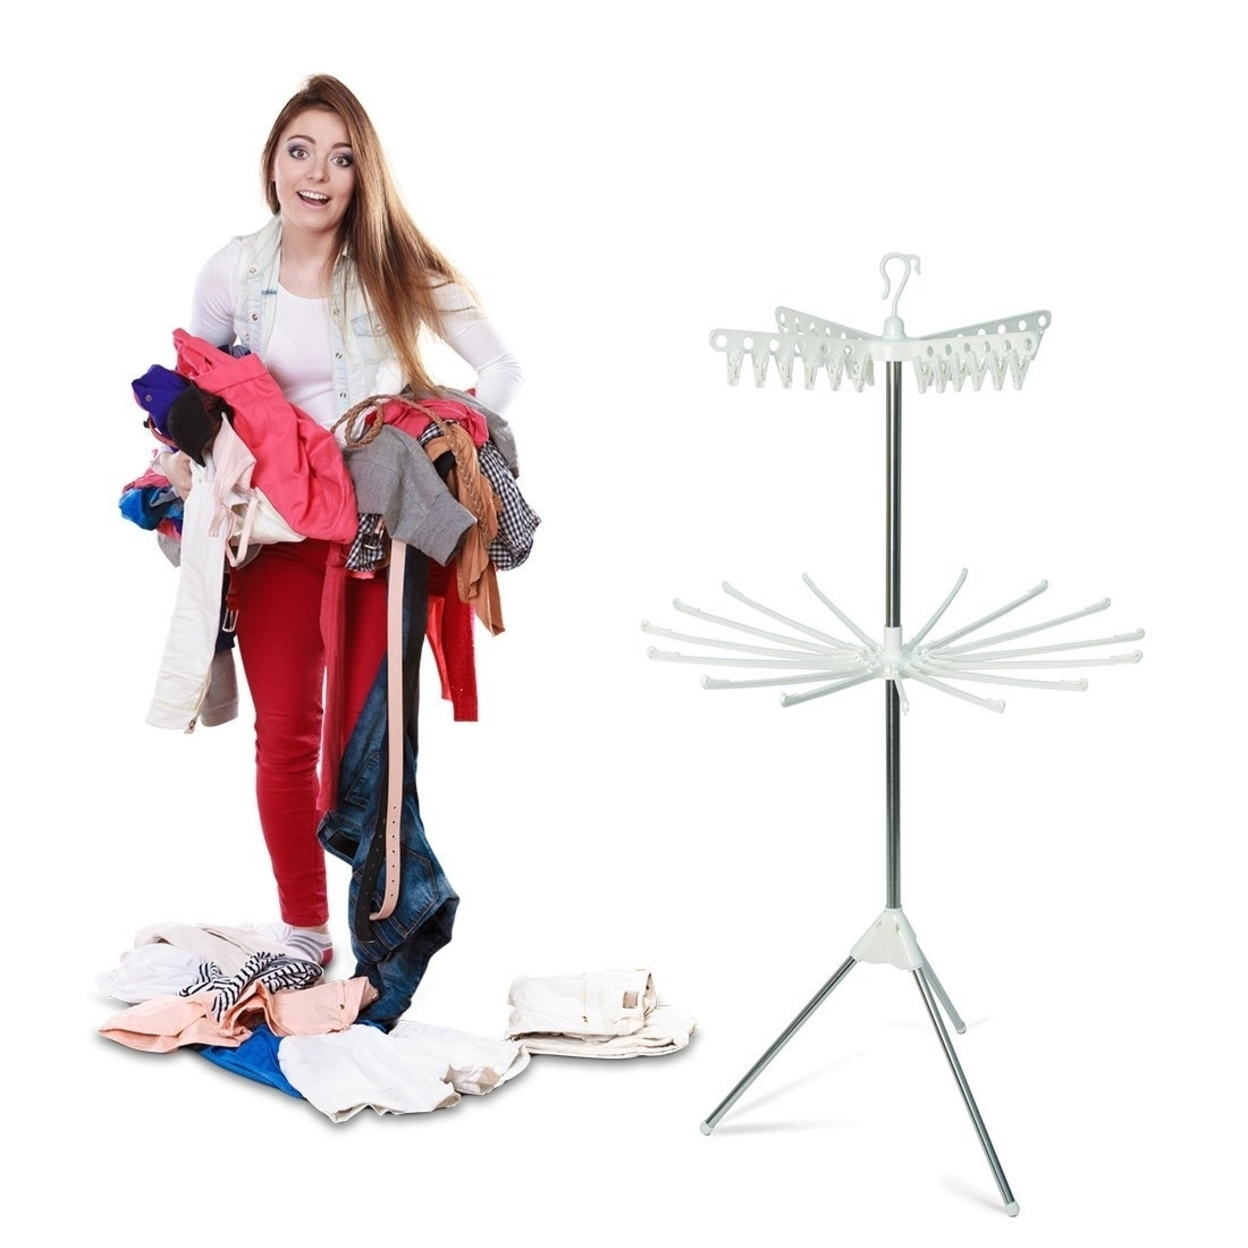 Abco 2 Tier Clothes Drying Rack - Allows for Full Length Drying - Easy to Assemble & Store Clothes Hanging Rack 5898d5b0927b0c311f1a0342